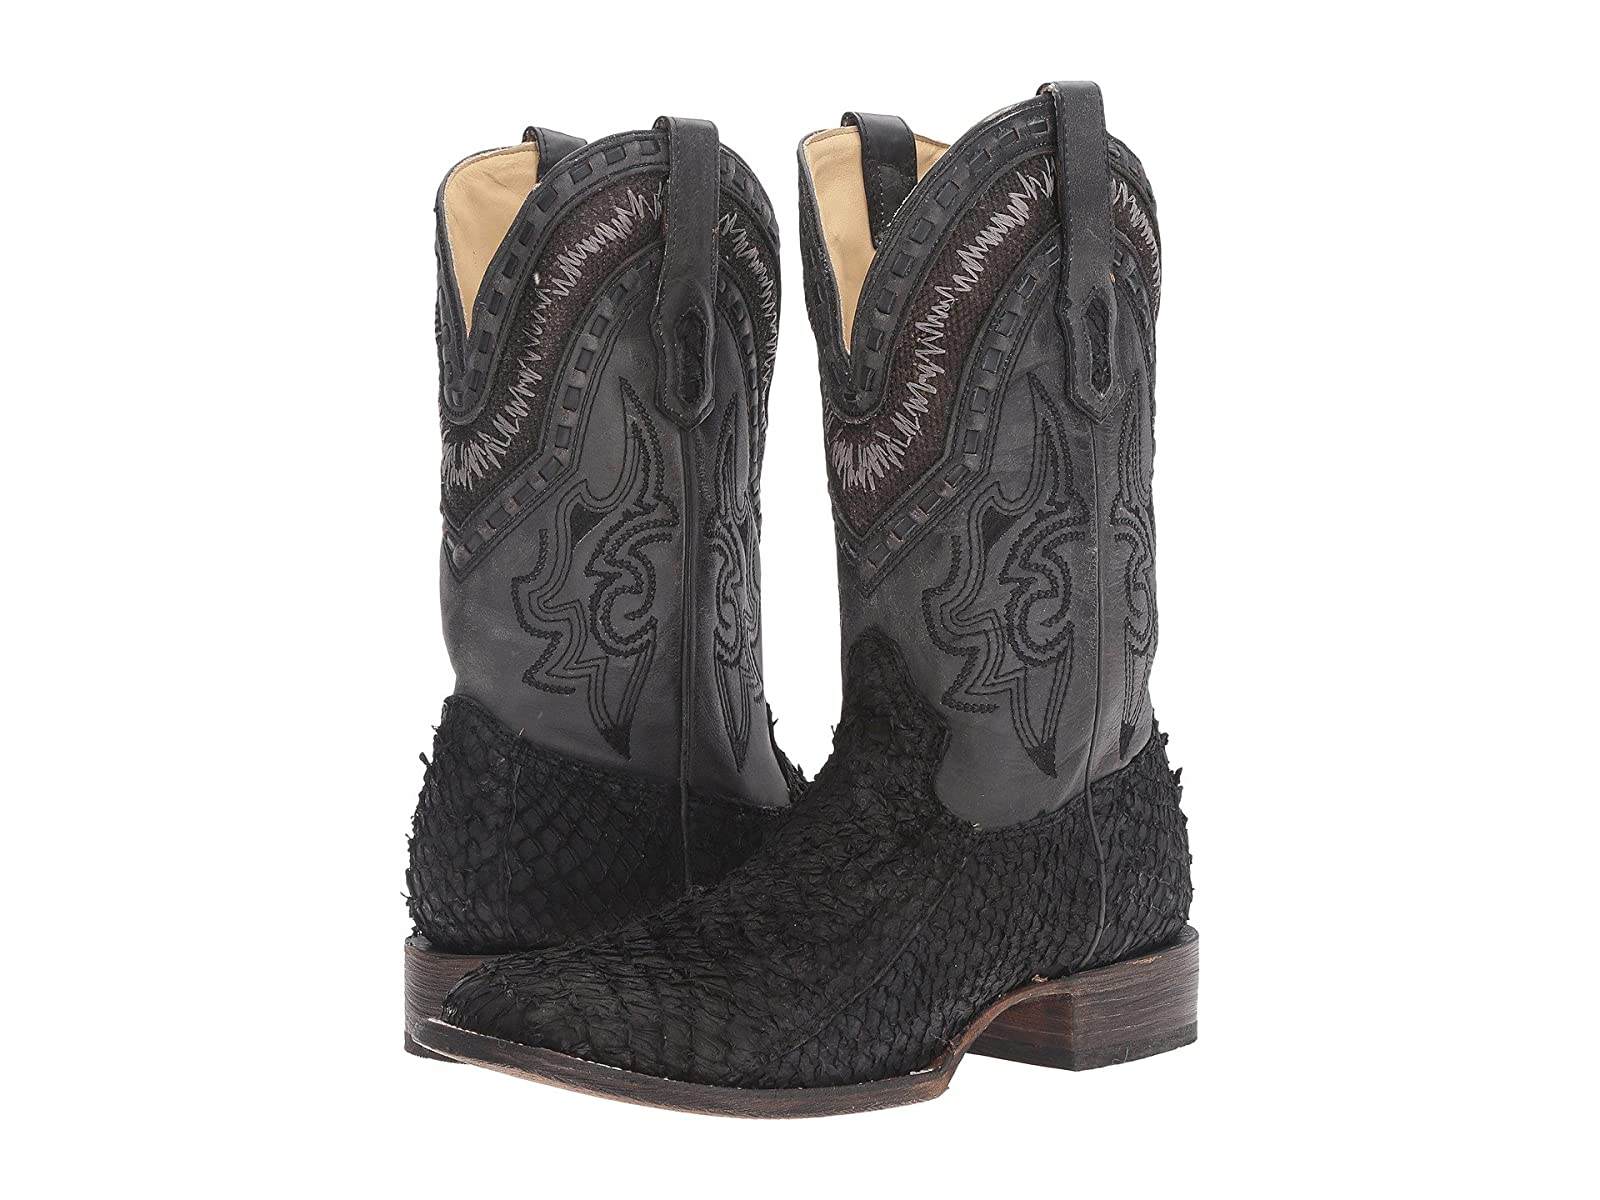 Corral Boots A3085Affordable and distinctive shoes